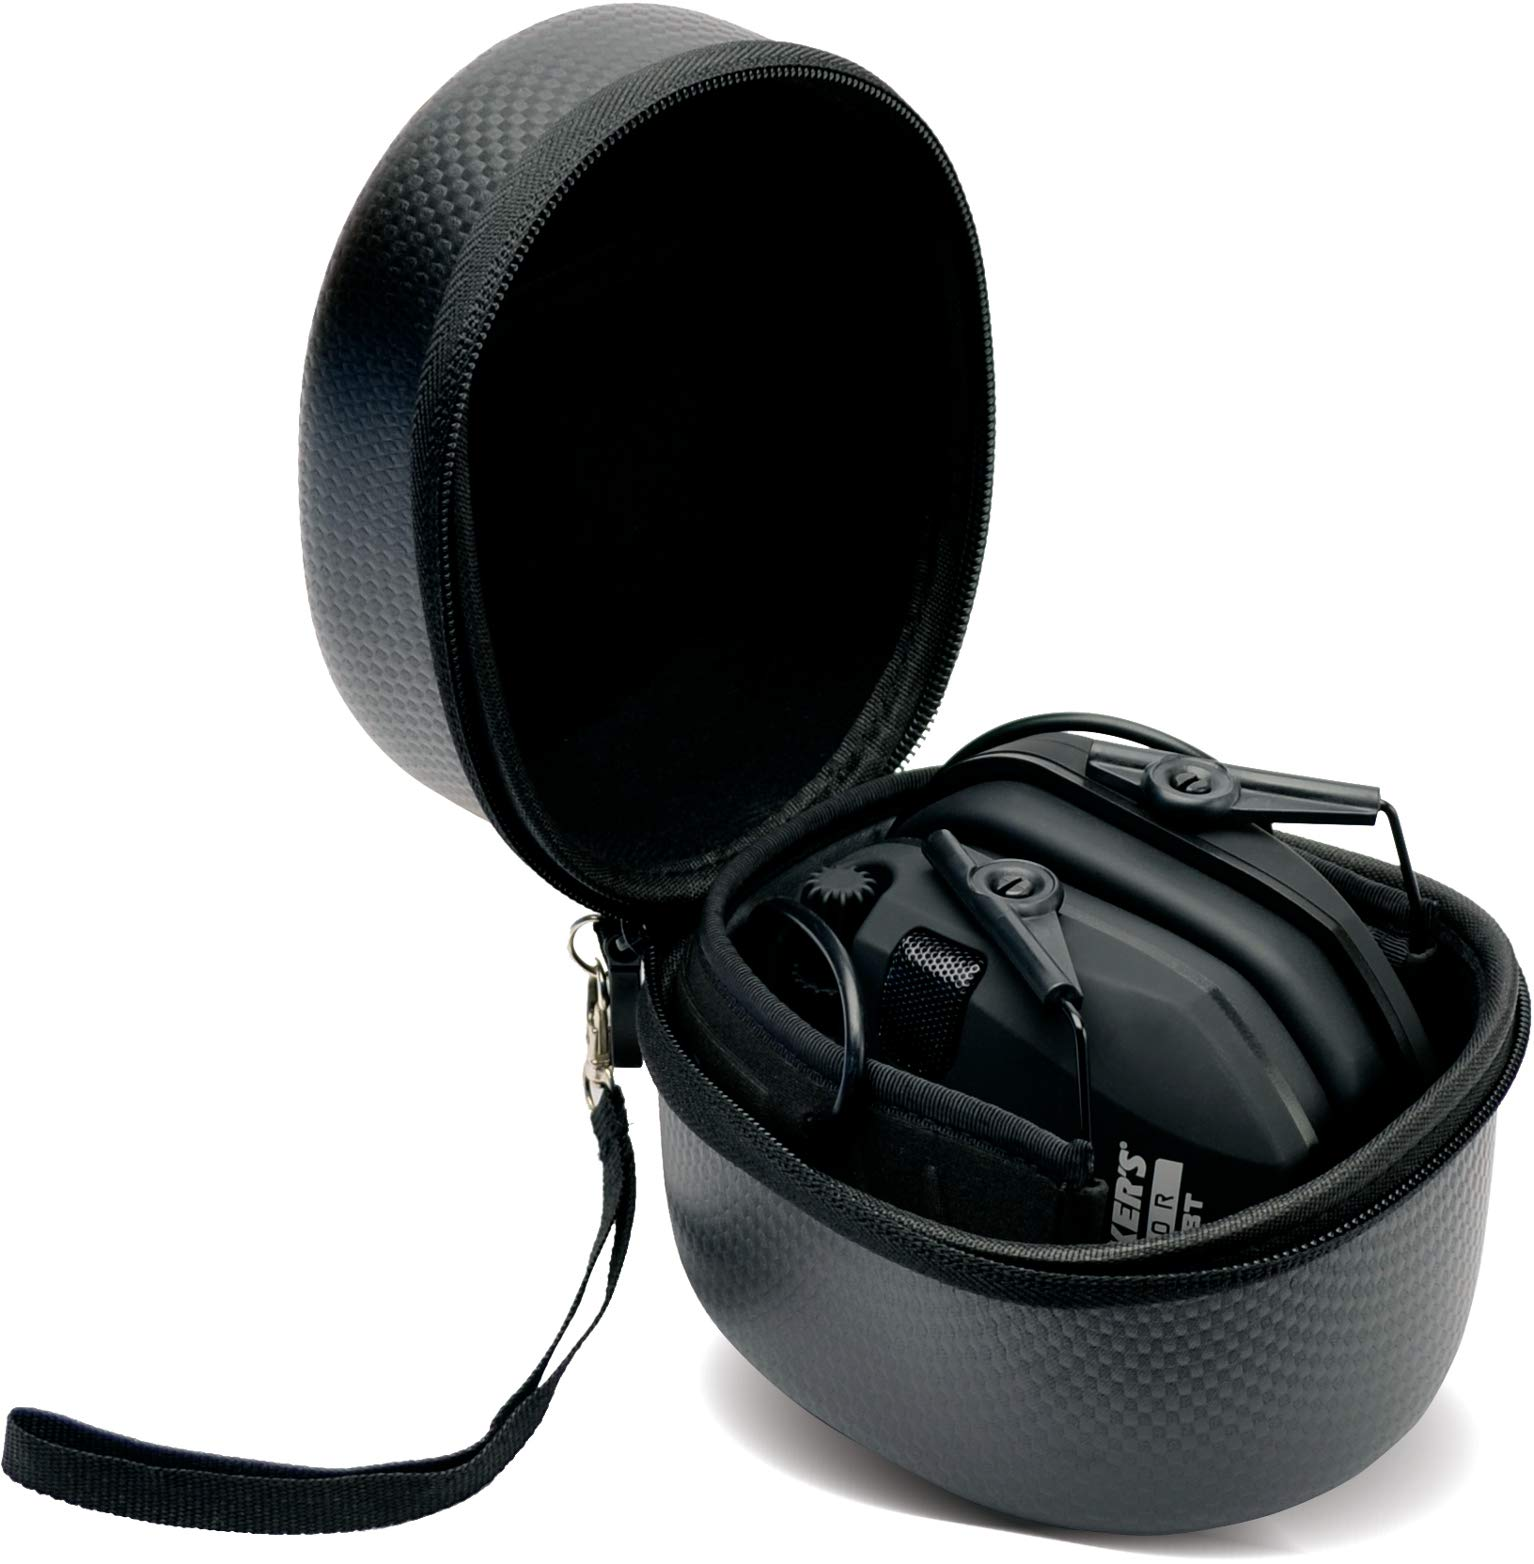 Walkers Razor Slim Electronic Shooting Hearing Protection Muff (Black) with Protective Case by Walkers (Image #7)